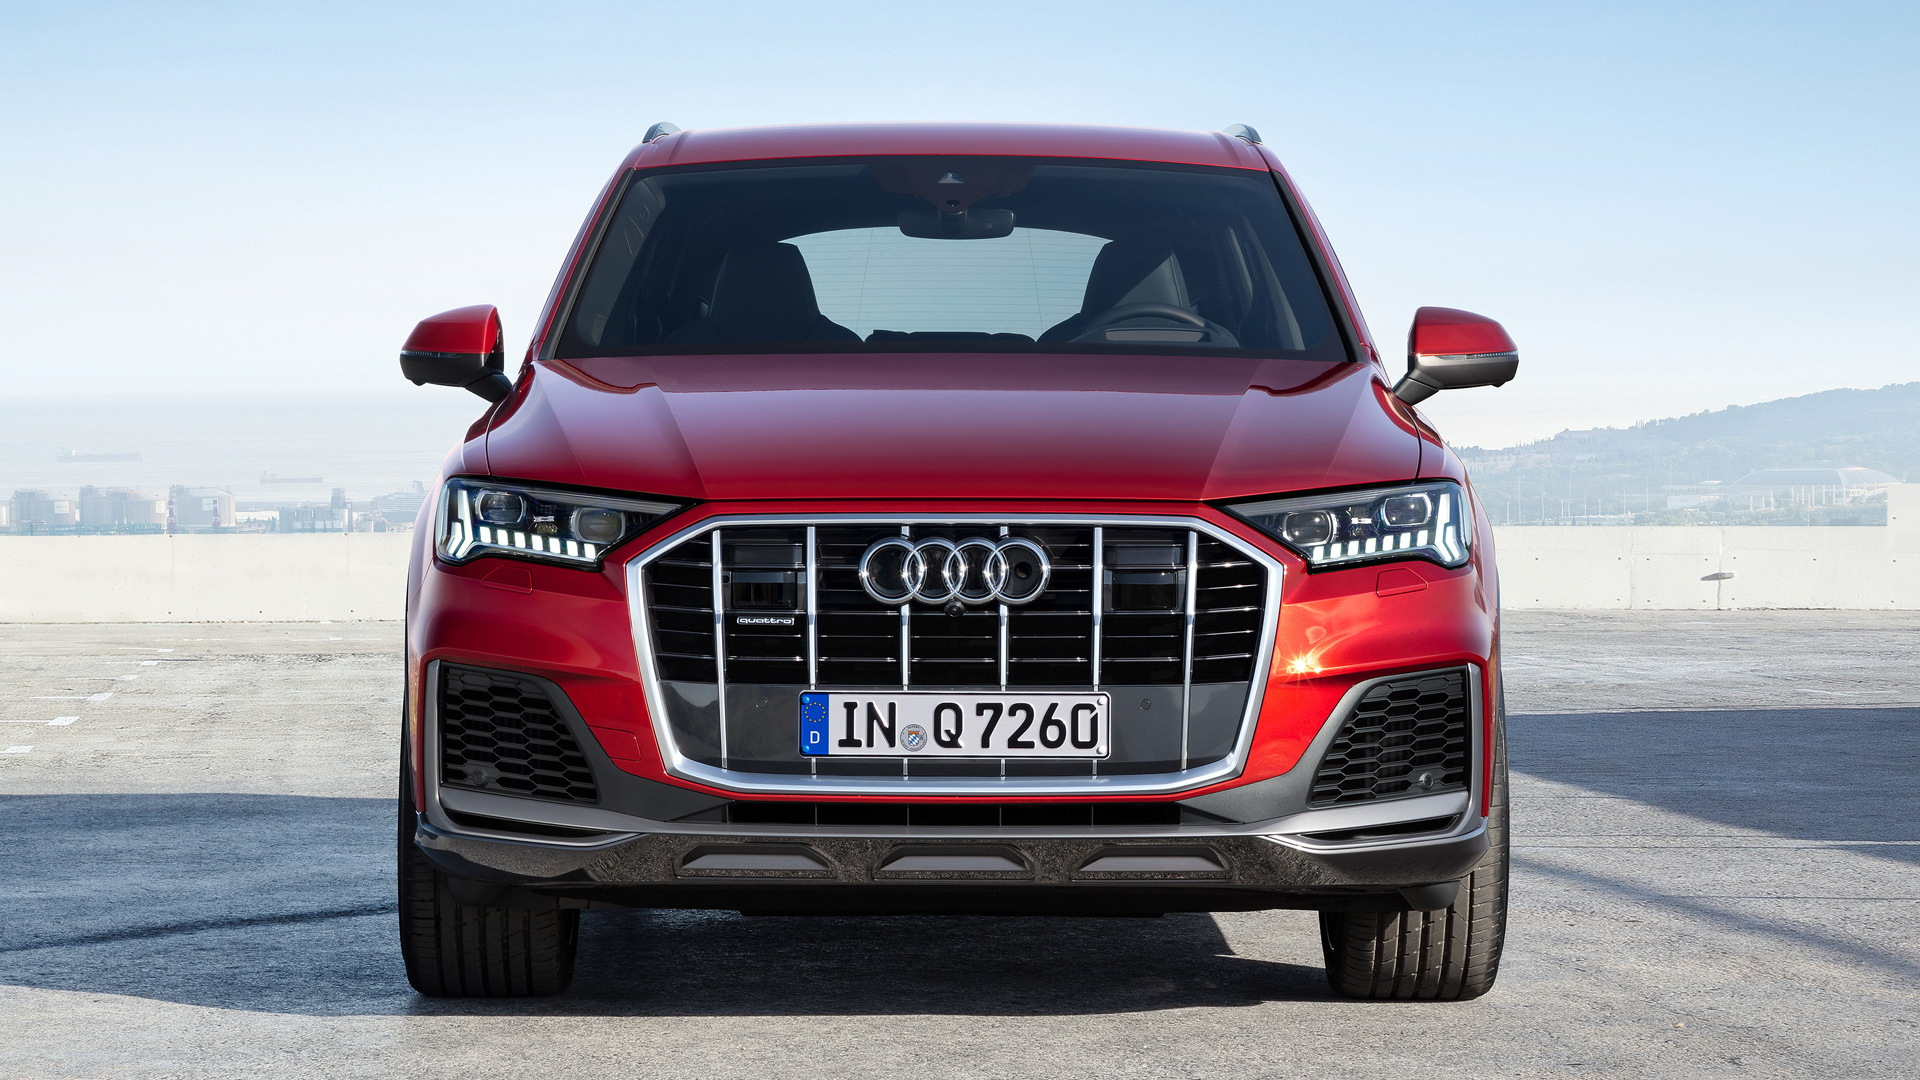 2020 Audi Q7's dash goes digital in latest update